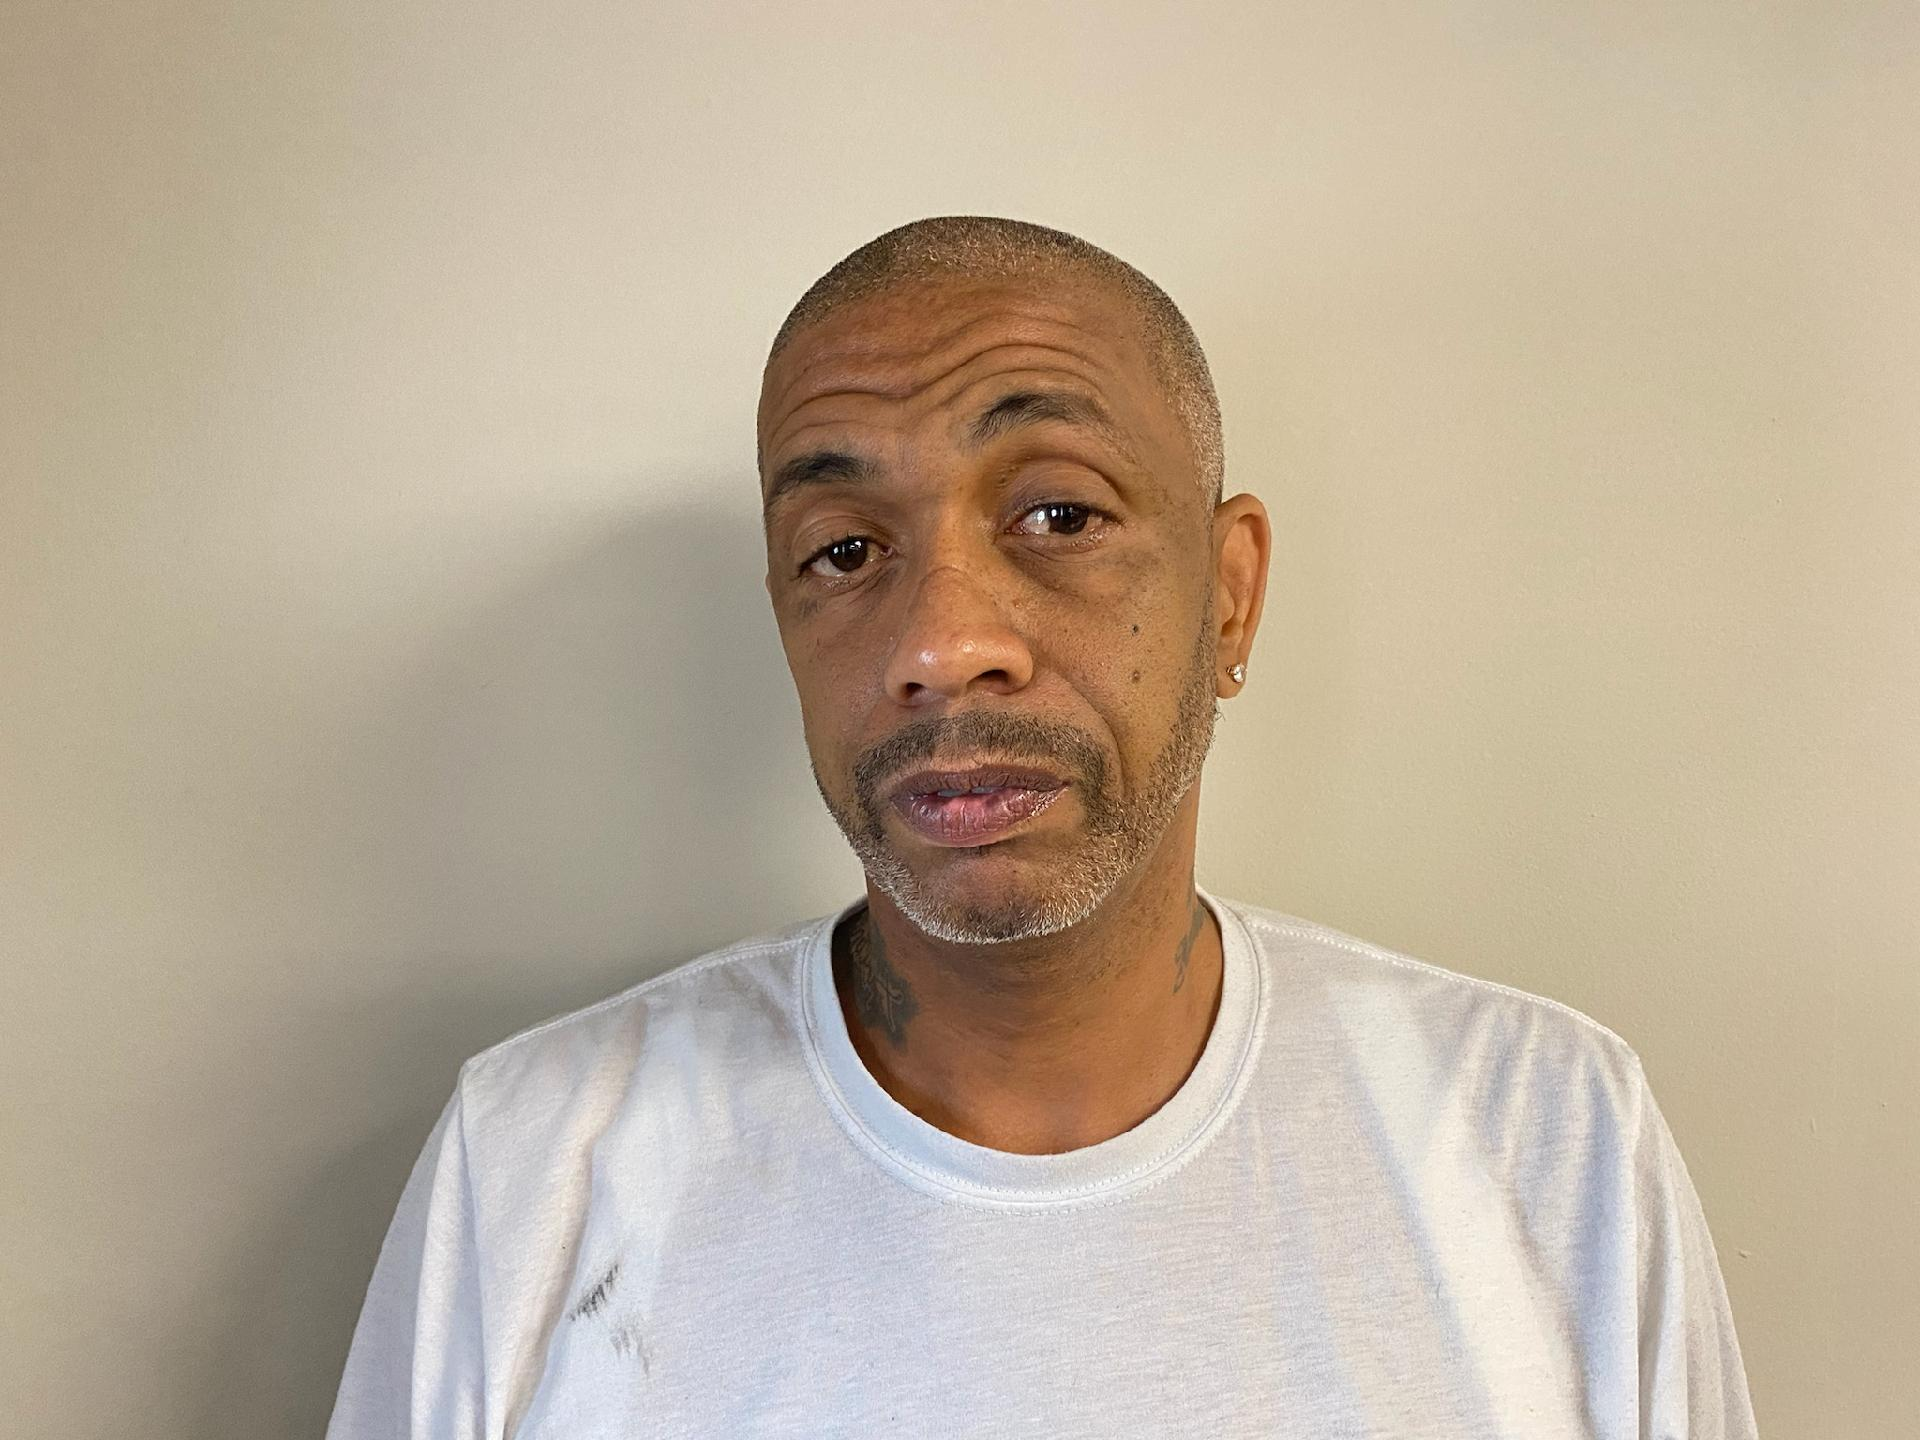 Local man faces several charges after discharging a firearm in Boone